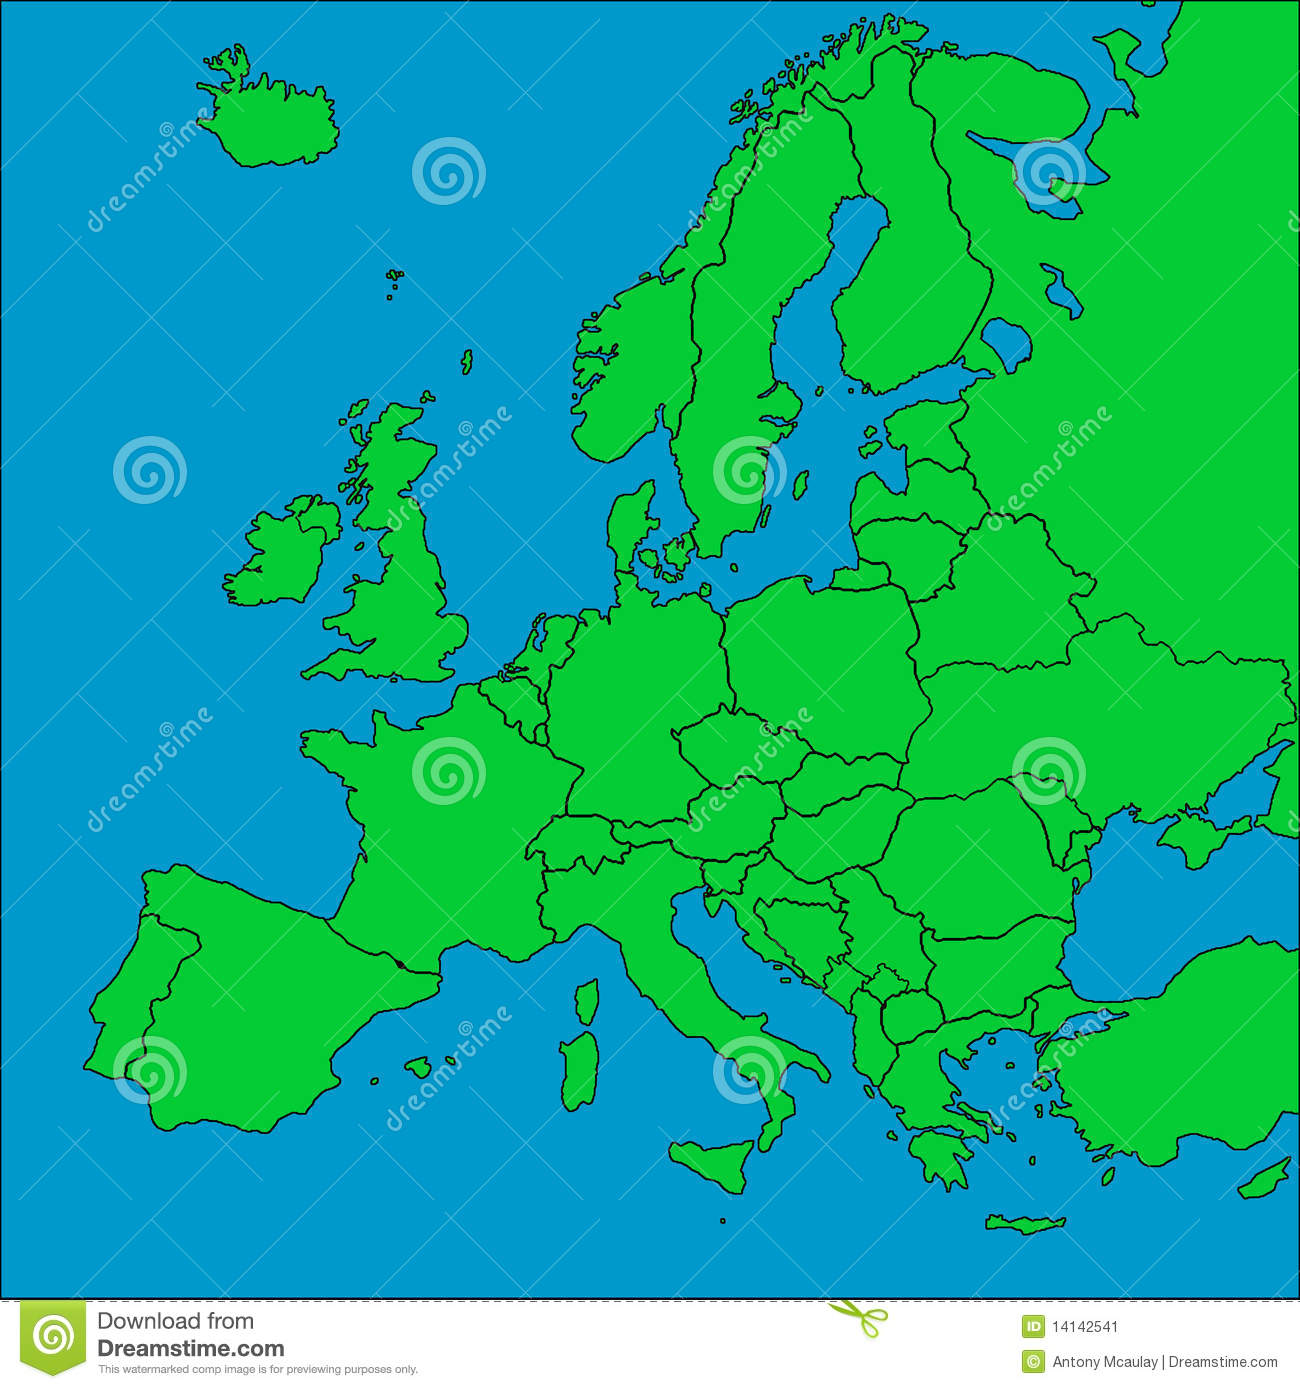 Green Map Of Europe.Map Of Europe With Borders Stock Illustration Illustration Of